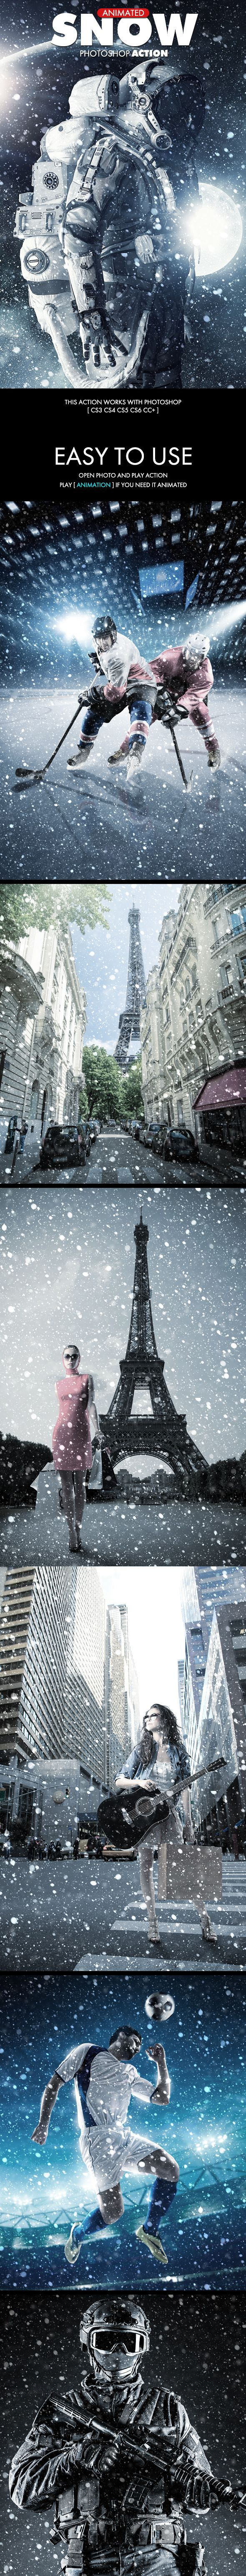 Snow Photoshop Action  Animated — Photoshop ATN #ice #snow • Available here ➝ https://graphicriver.net/item/snow-photoshop-action-animated/20693215?ref=pxcr